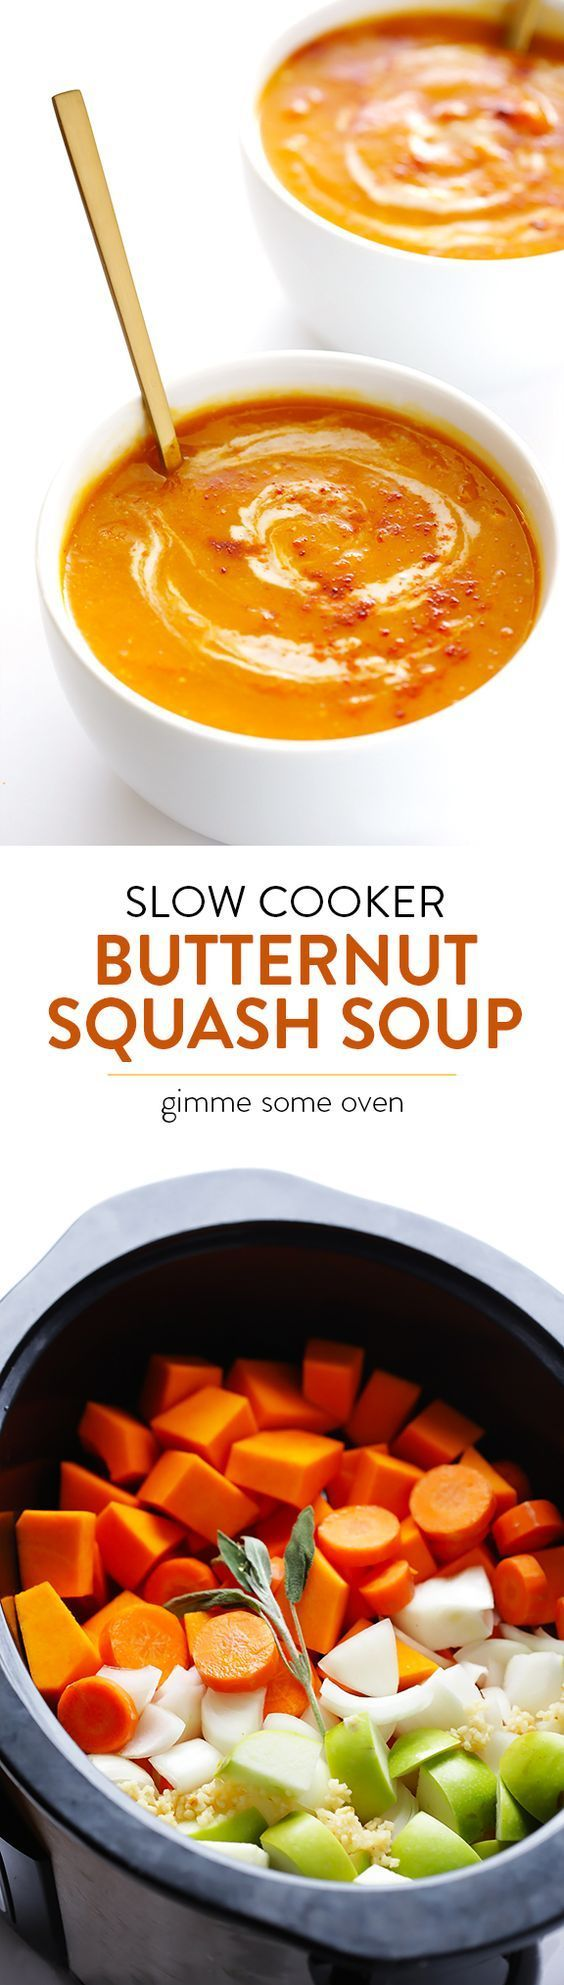 Whole30 Slow Cooker Butternut Squash Soup Recipe